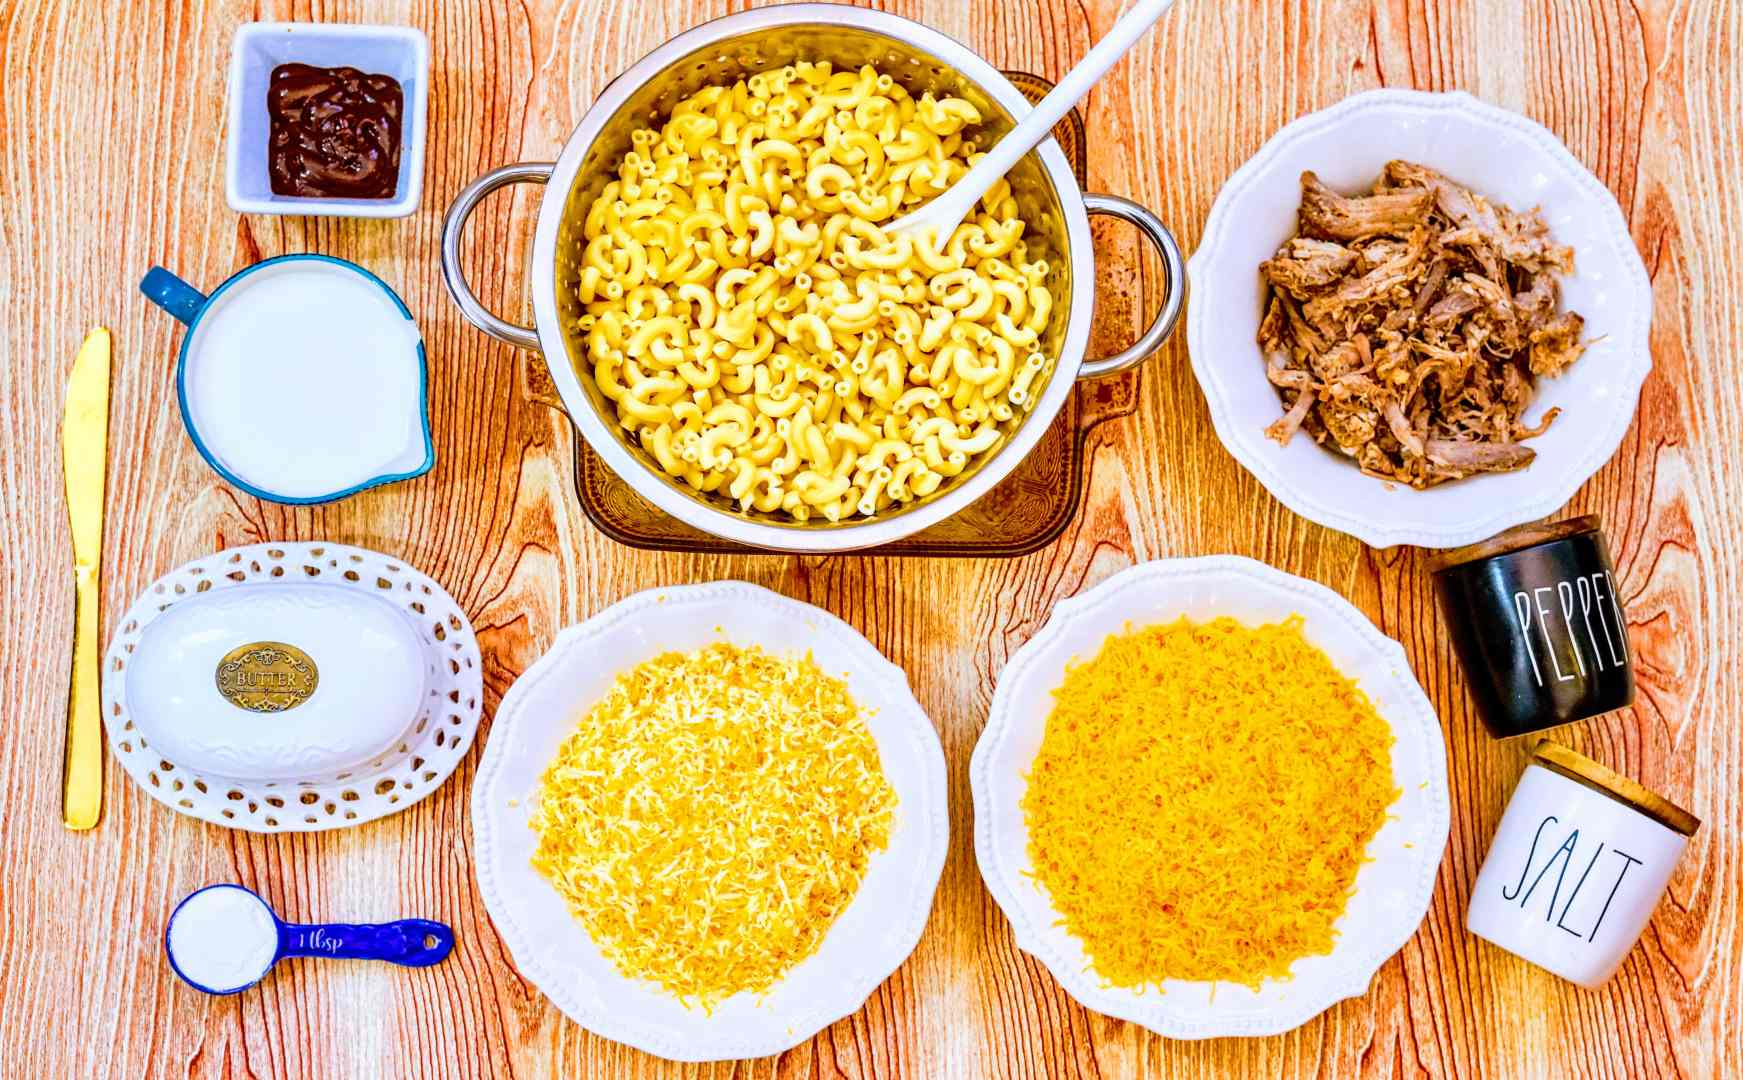 homemade mac and cheese ingredients